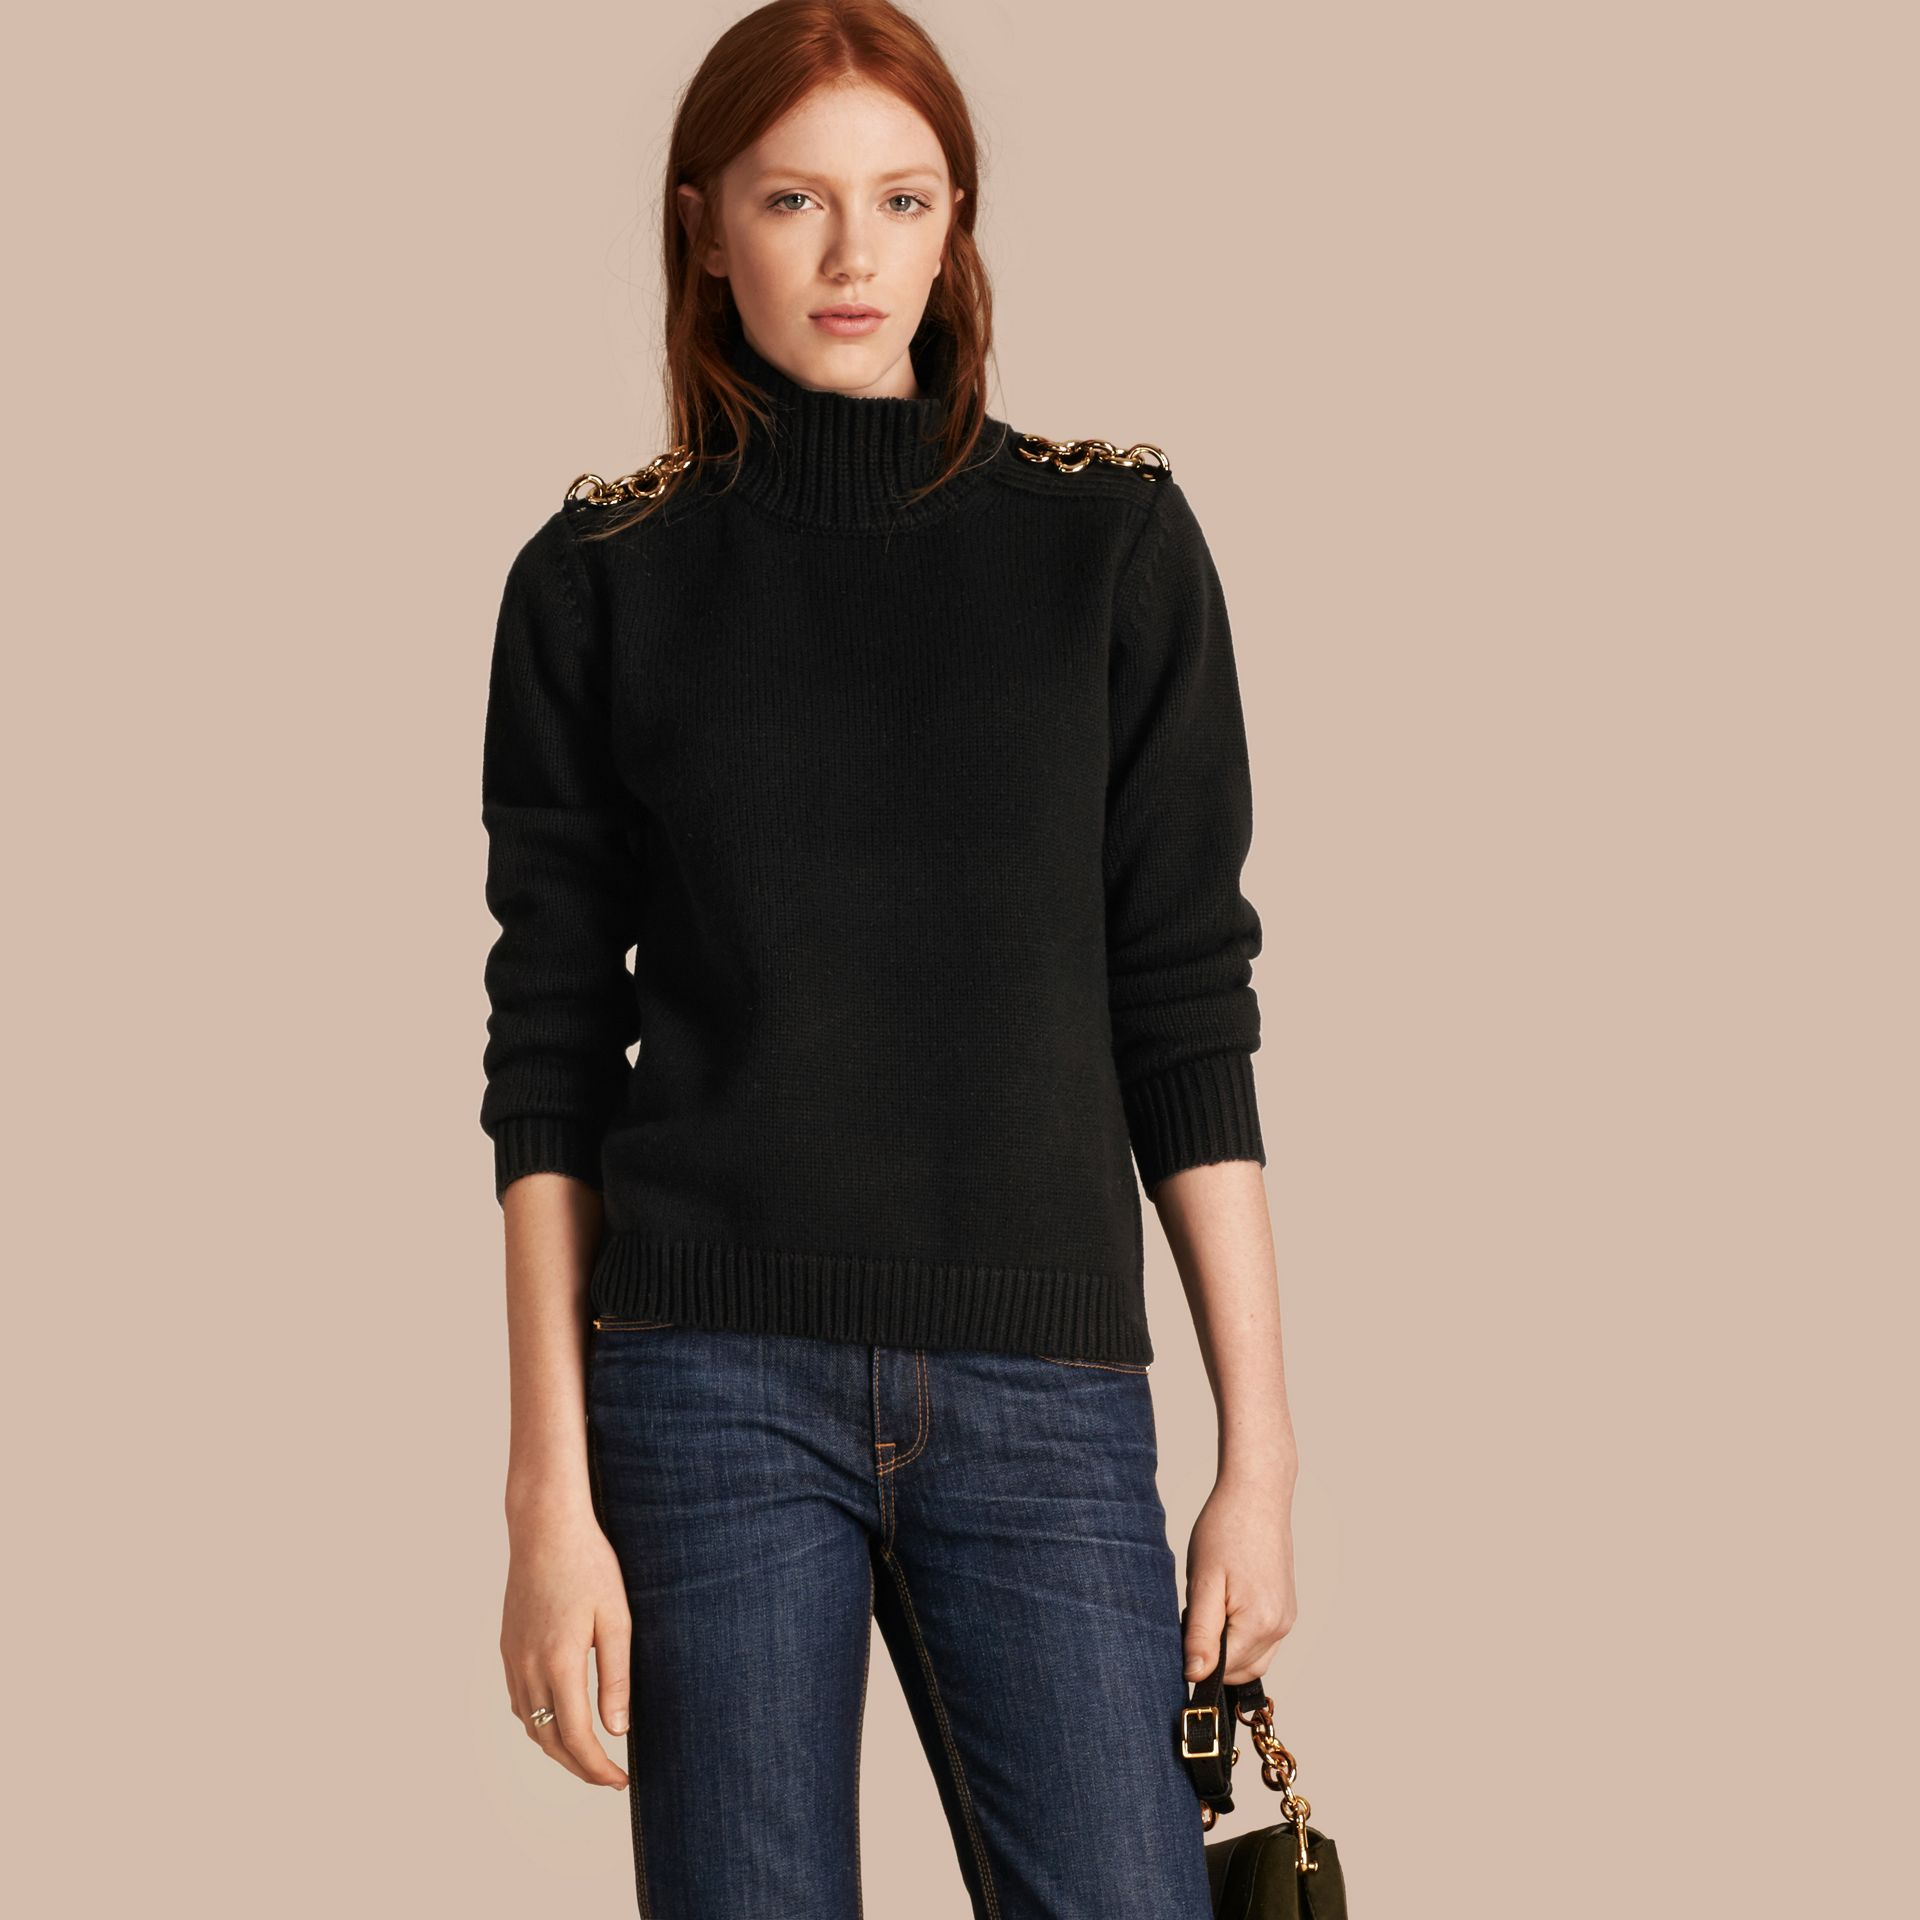 Black Regimental Detail Wool Cashmere High-neck Sweater - gallery image 1